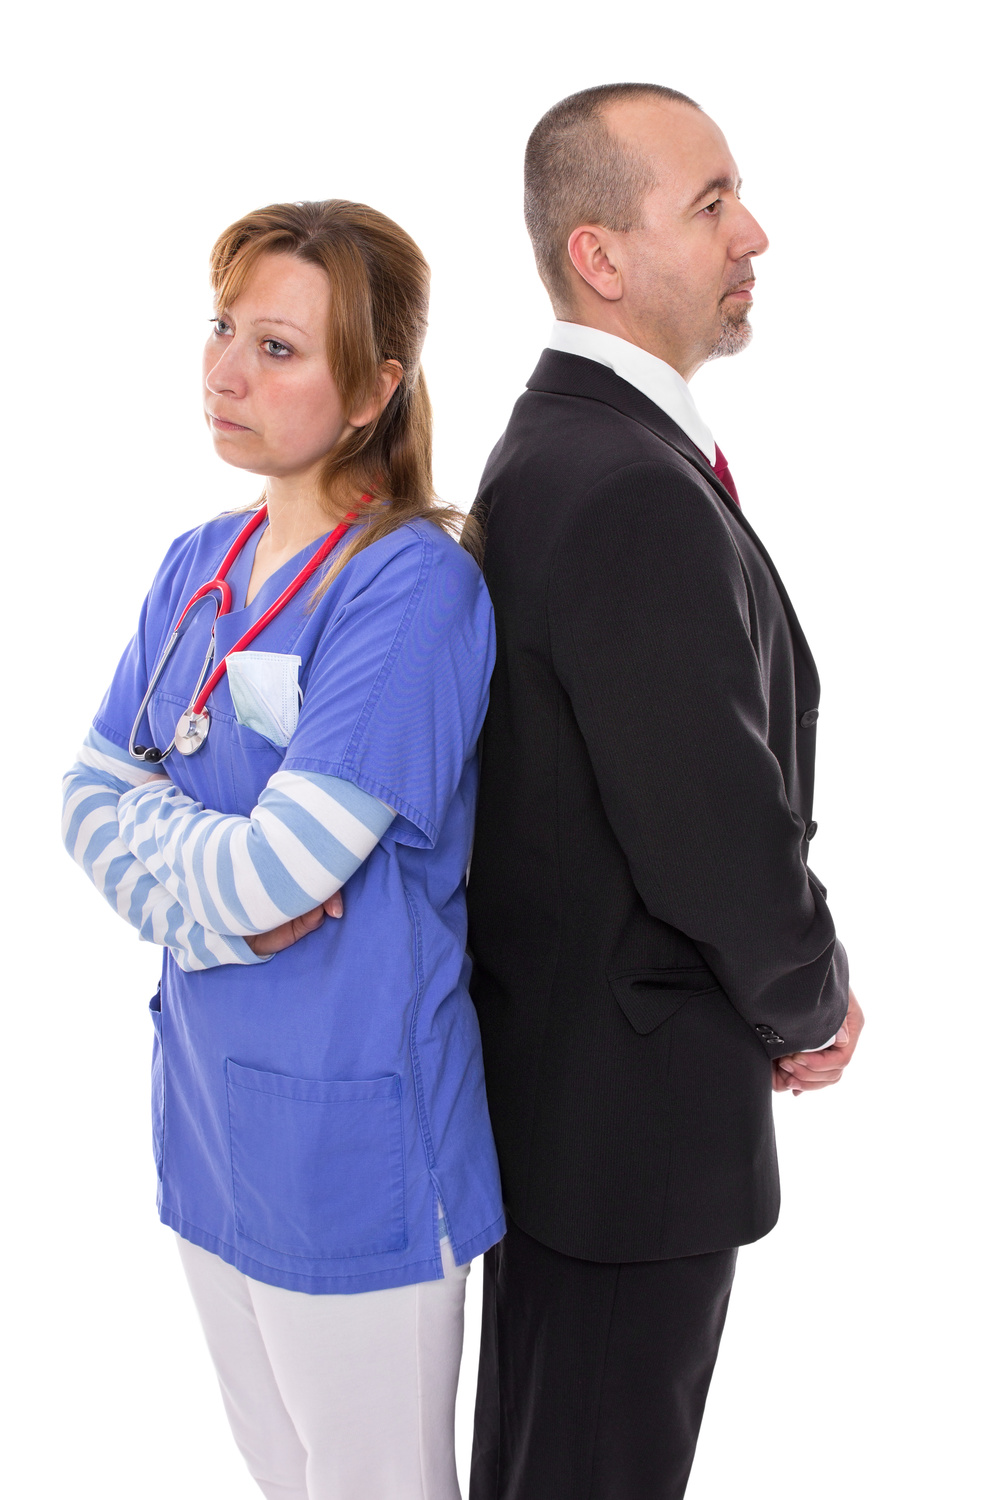 Can your boss talk to your doctor? Image © tibanna79 -- stock.adobe.com